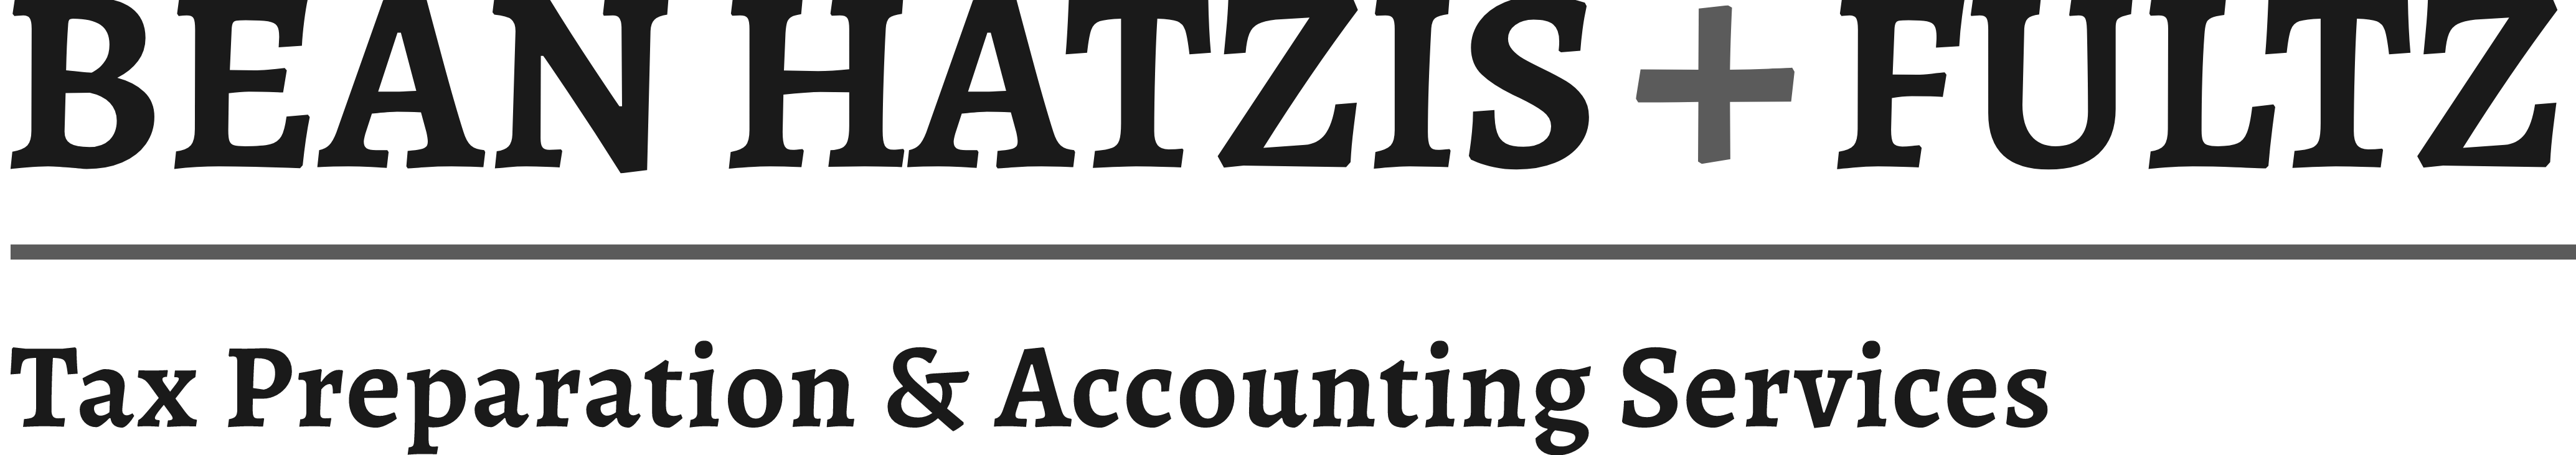 Salem, MA Tax Preparation Firm | Non-Filed Tax Returns Page | Bean Hatzis & Fultz